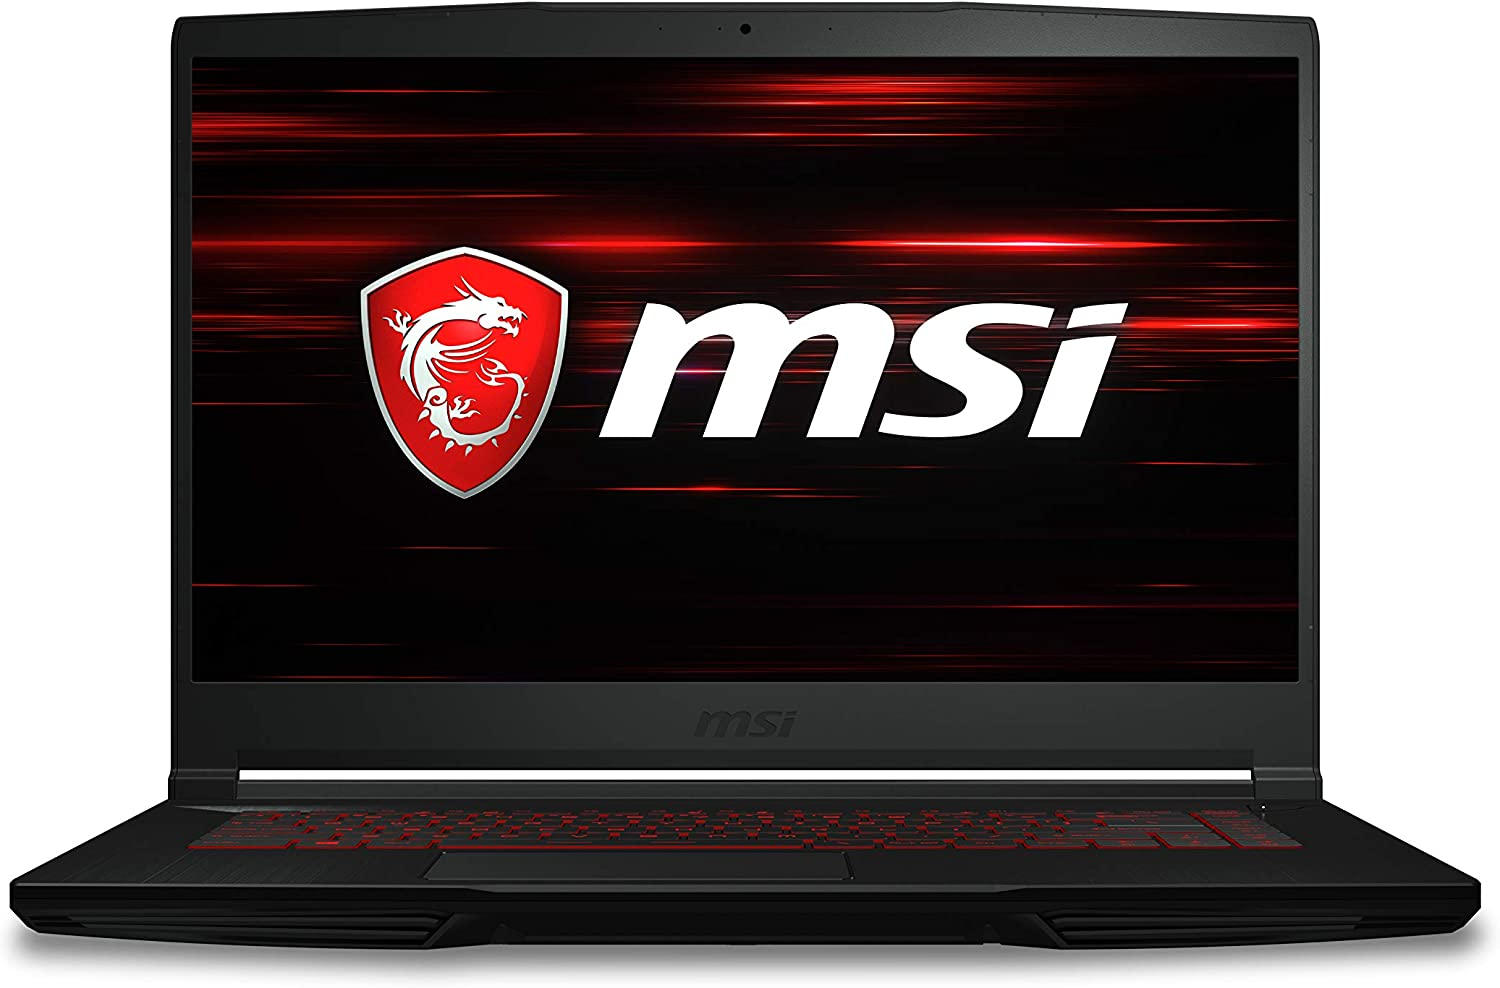 "MSI GF63 THIN 9RCX-818 15.6"" Gaming Laptop, Thin Bezel, Intel Core i7-9750H, NVIDIA GeForce GTX 1050 Ti, 8GB, 256GB NVMe SSD"